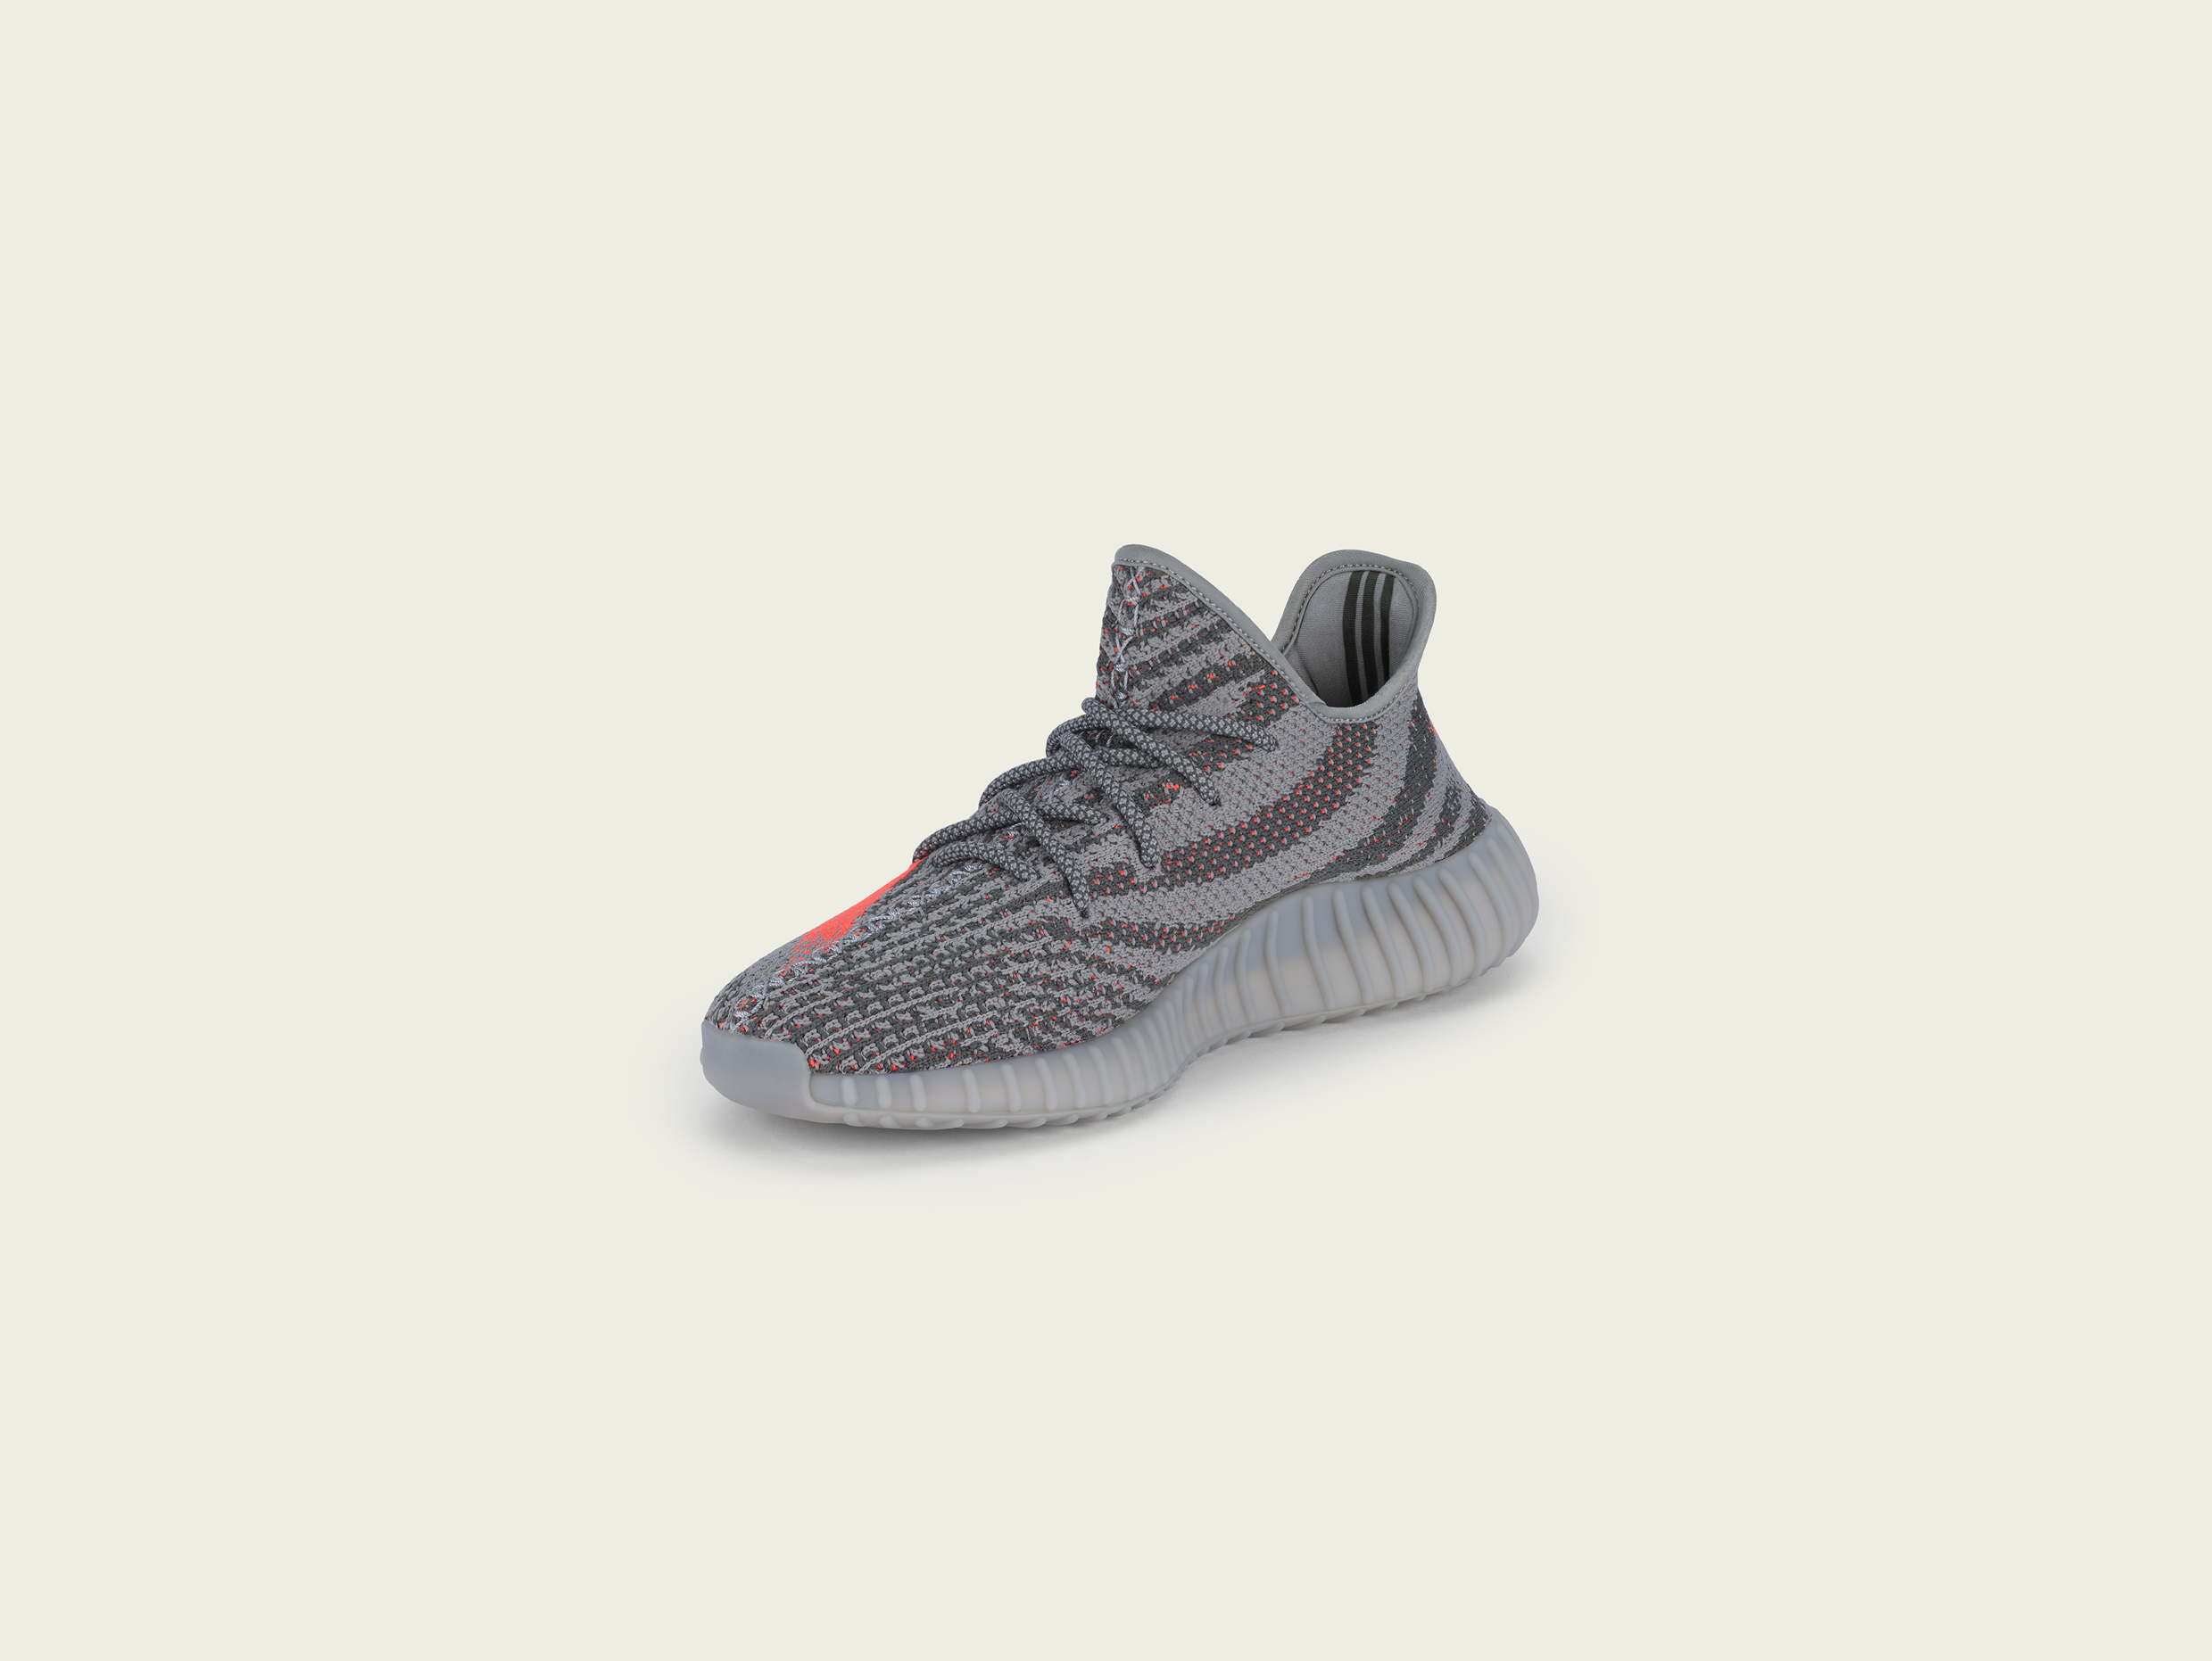 adidas yeezy boost 350 v2 beluga soleracks. Black Bedroom Furniture Sets. Home Design Ideas